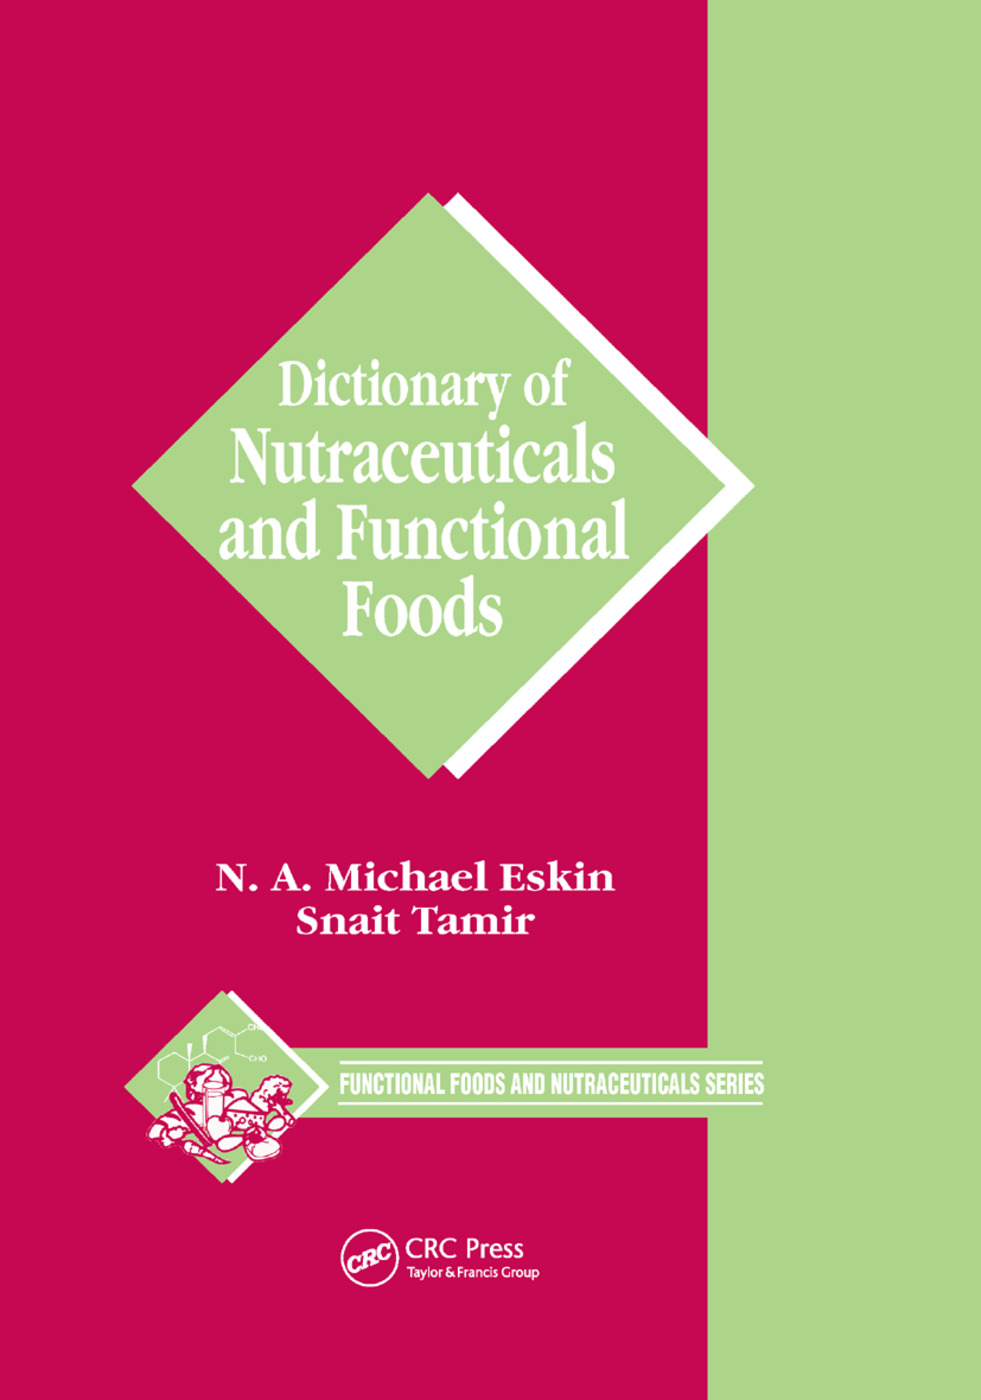 Dictionary of Nutraceuticals and Functional Foods